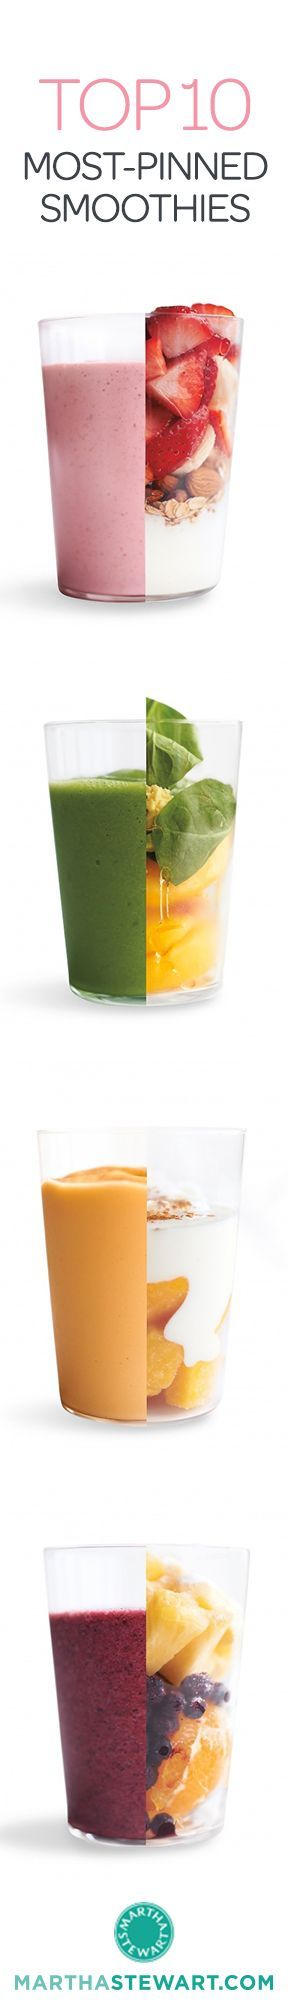 Top 10 Most-Pinned Smoothie Recipes